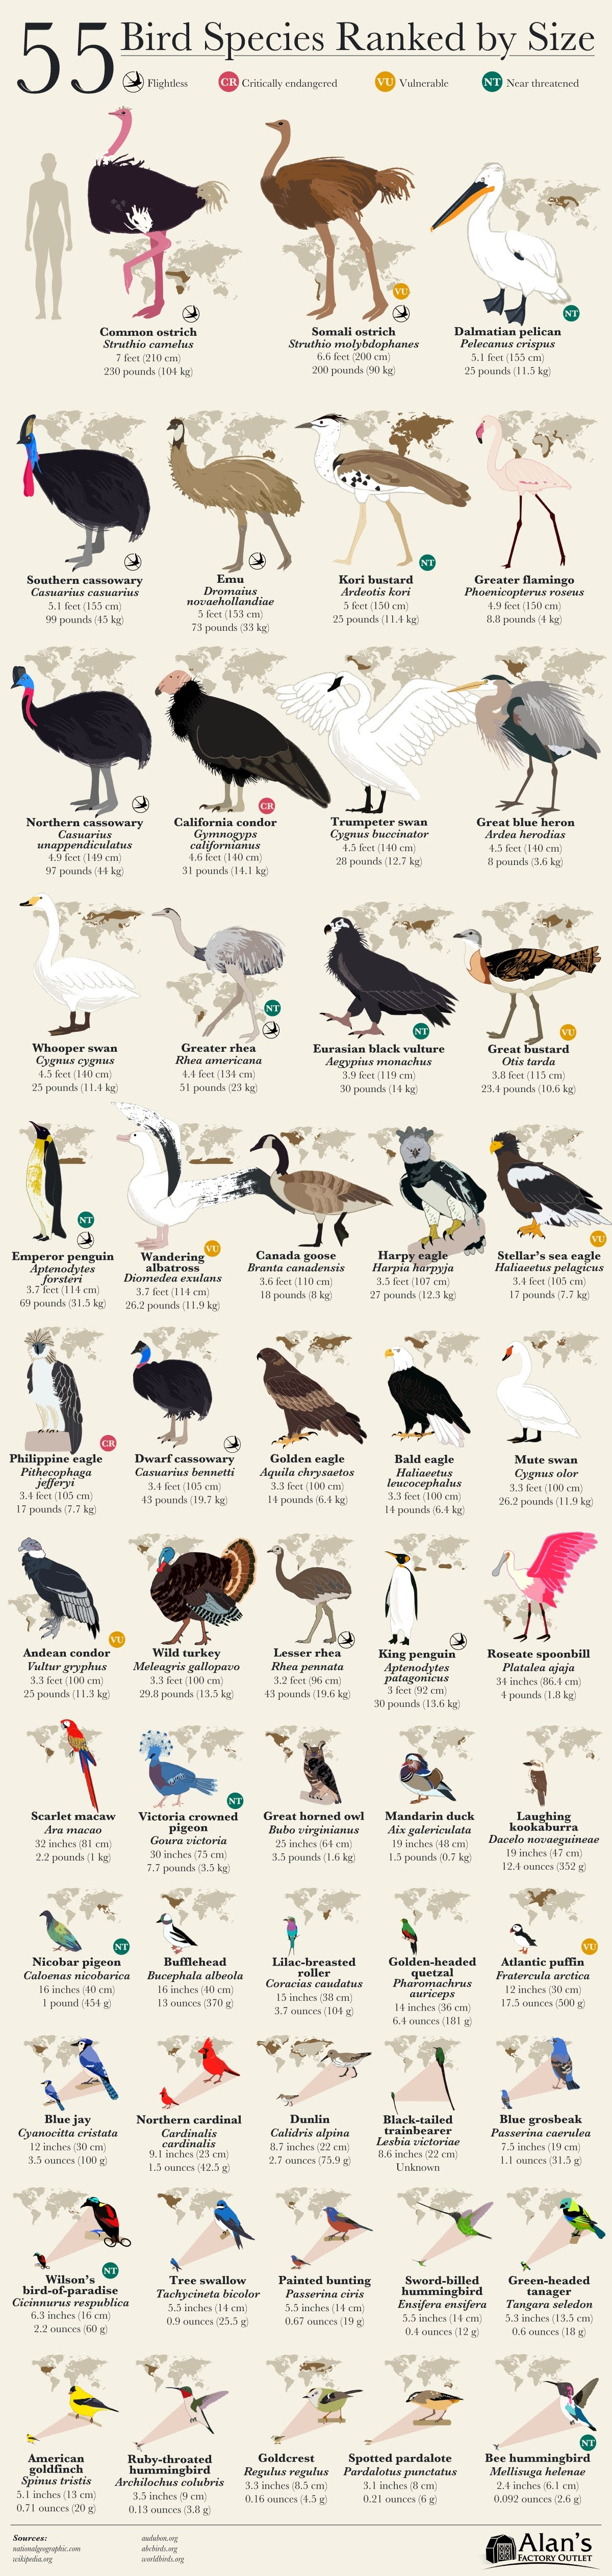 55-bird-species-ranked-by-size-infographic